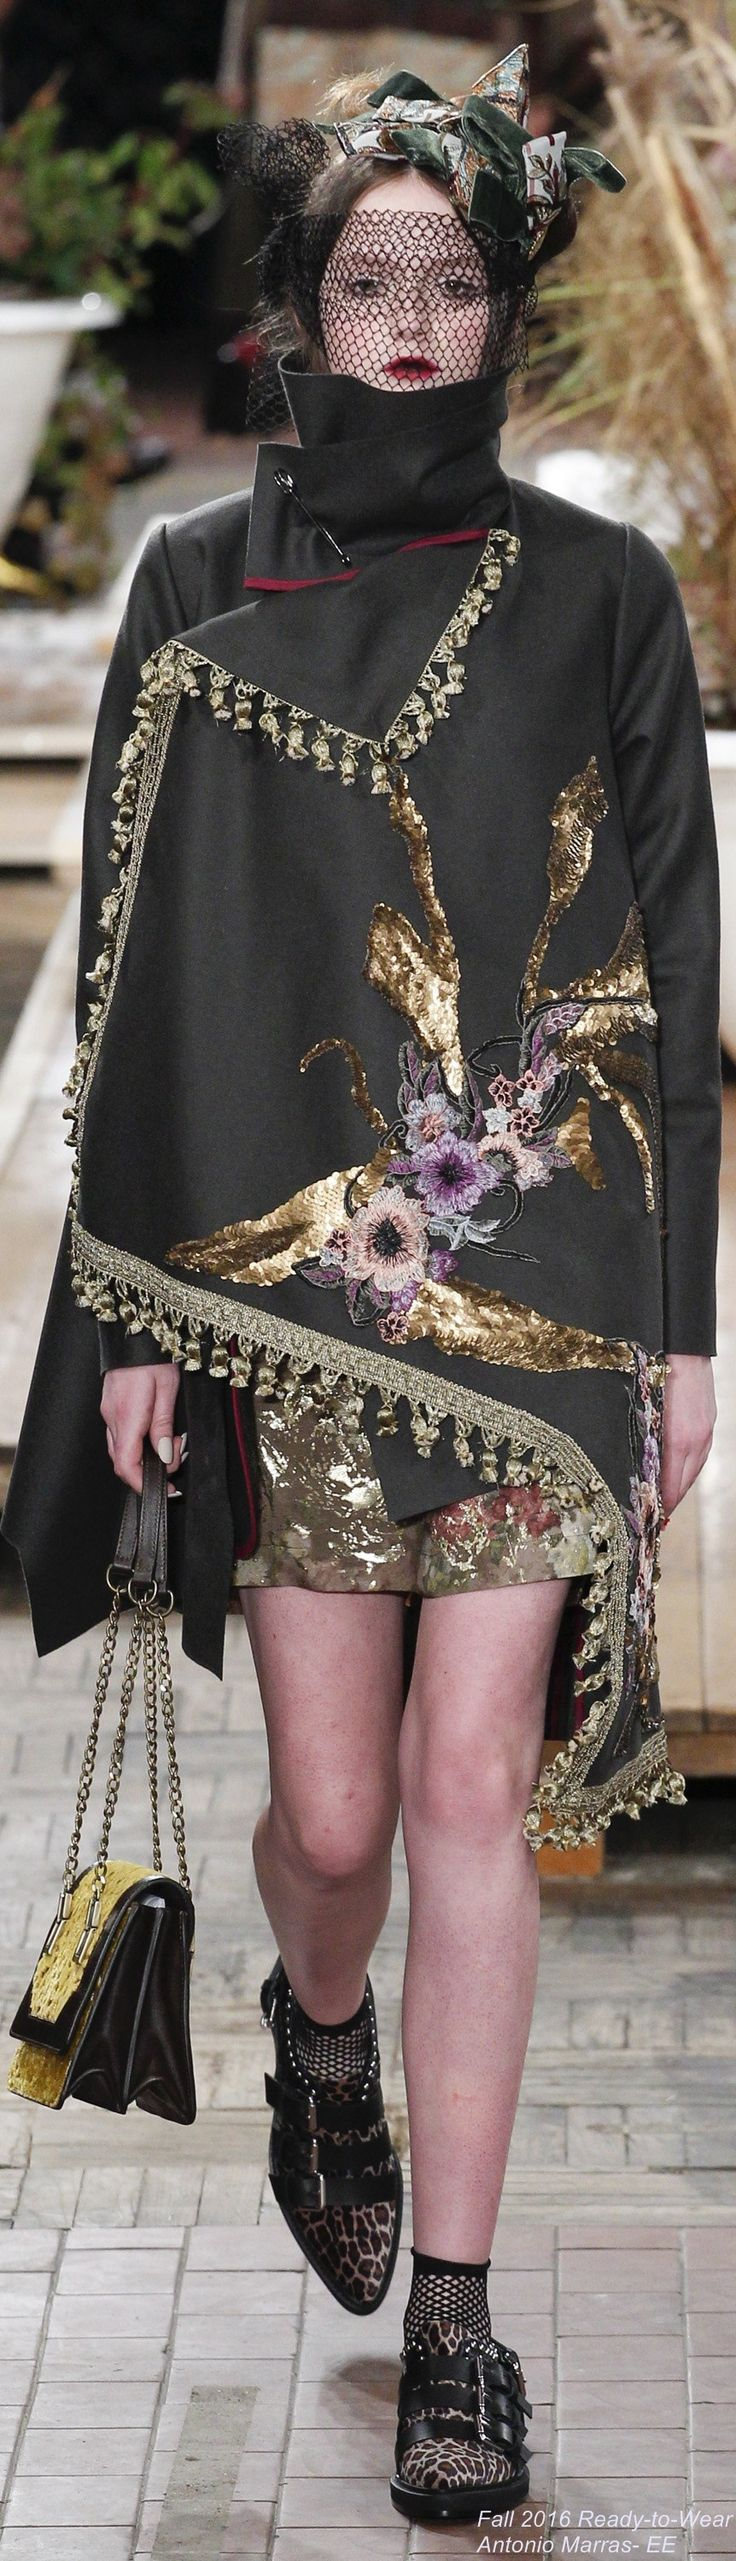 Fall 2016 Ready-to-Wear Antonio Marras